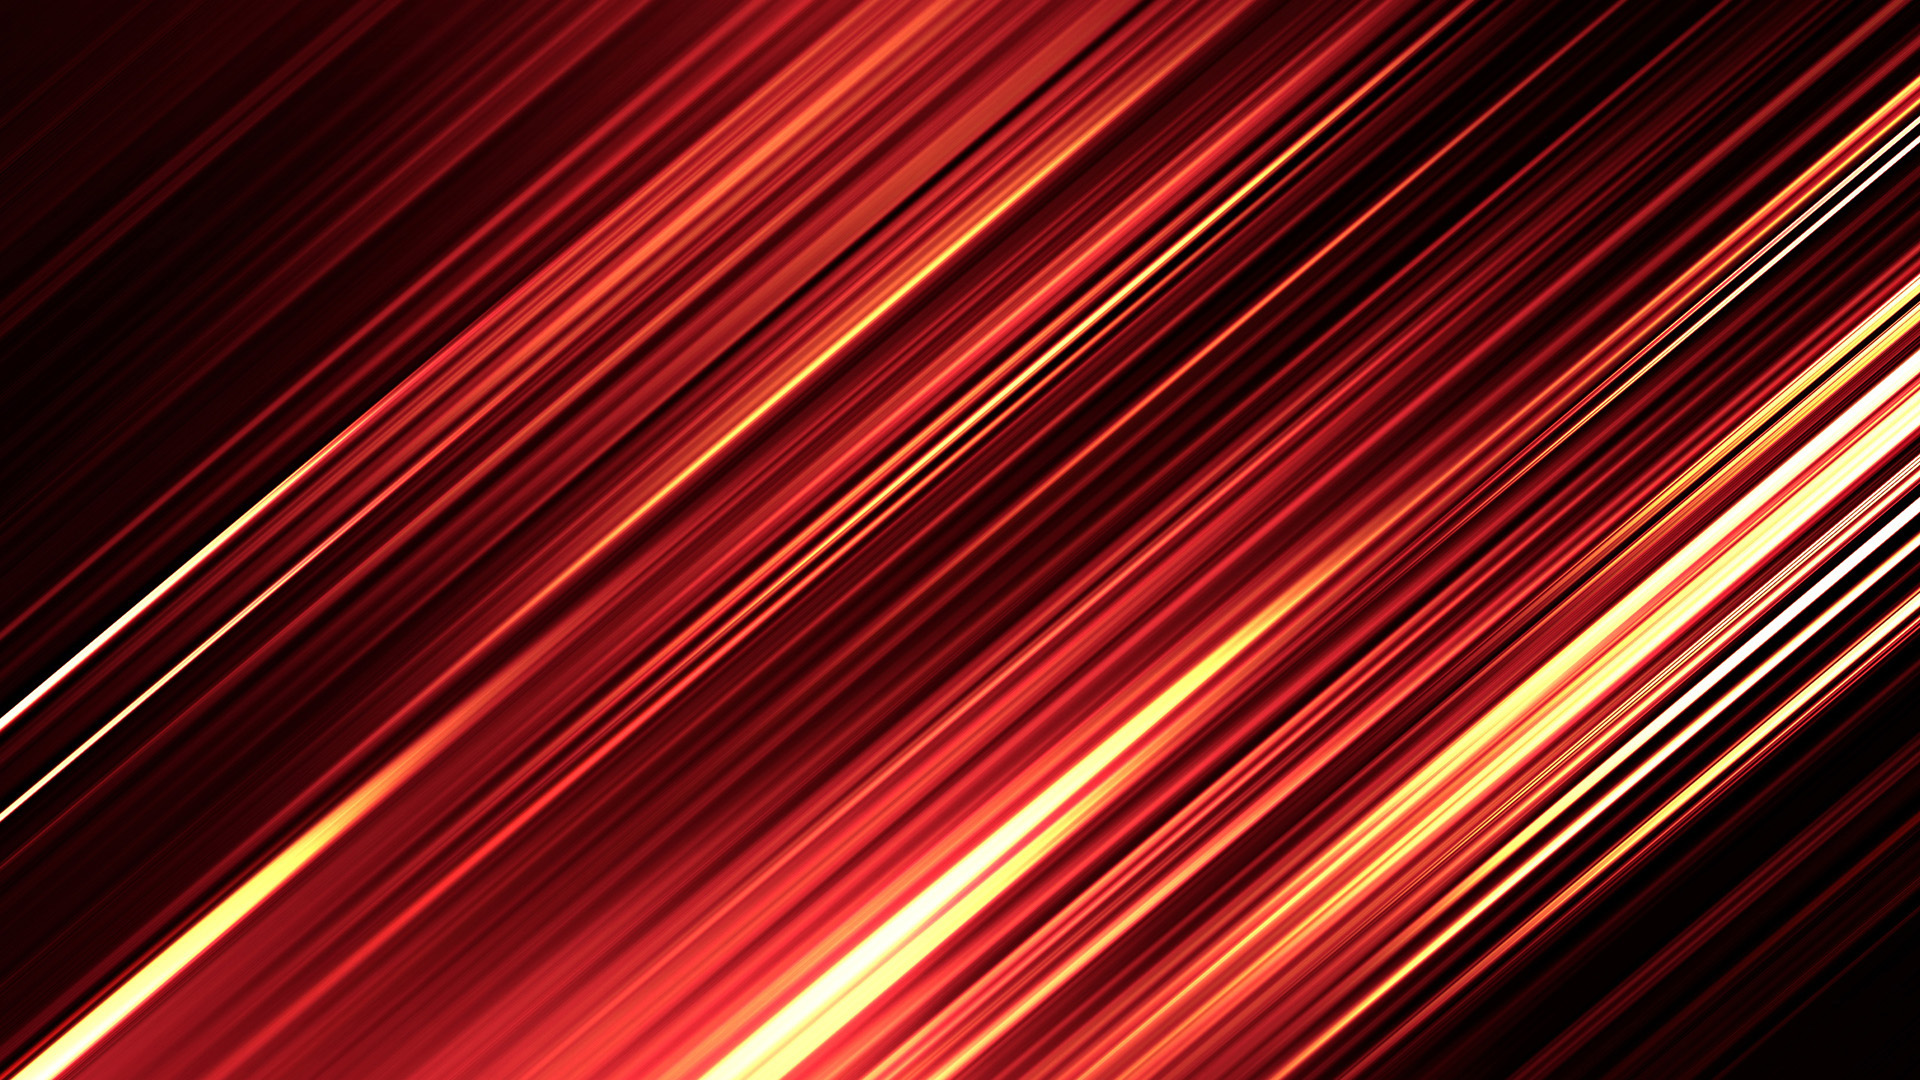 abstract texture wallpapers - photo #12